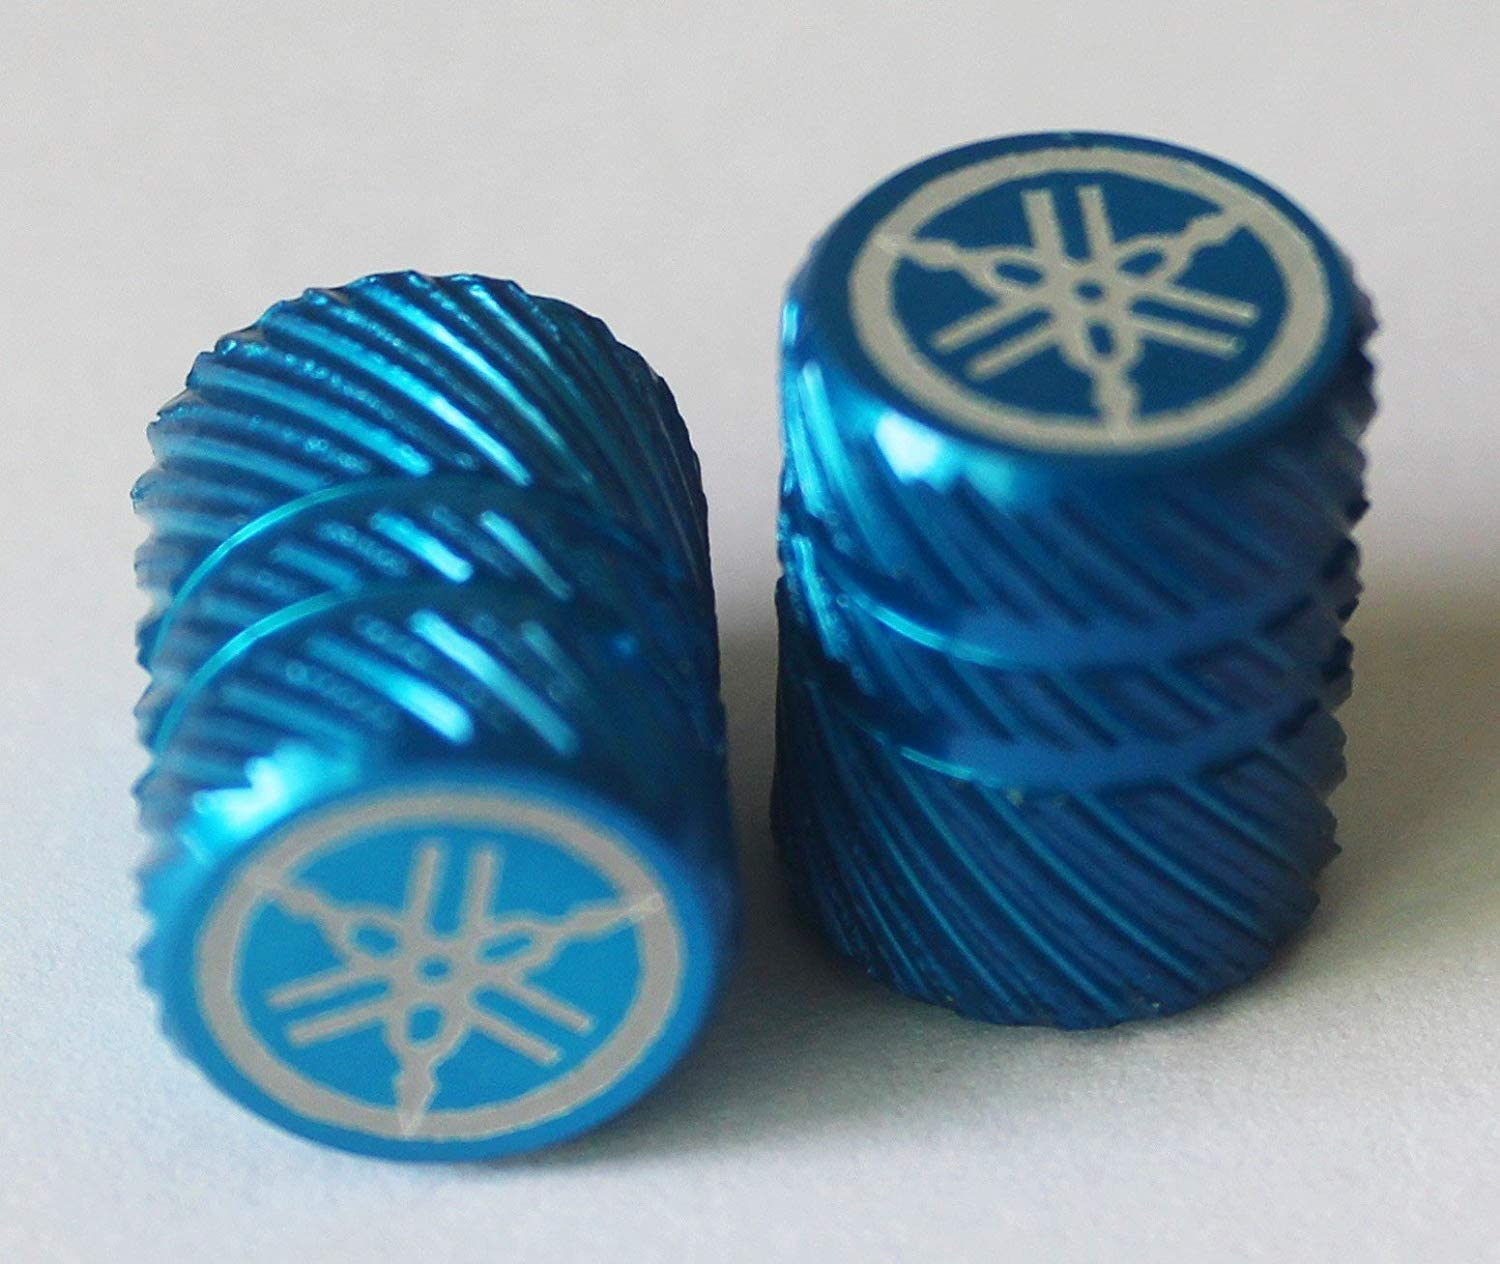 Car Bicycles Set Of 2 Genuine Yamaha Tuning Fork Plain Finish Blue Tyre Tire Valve Caps Dust Caps Protectors For Motorcycles Van ATV Yamaha 90338-W1015-BU